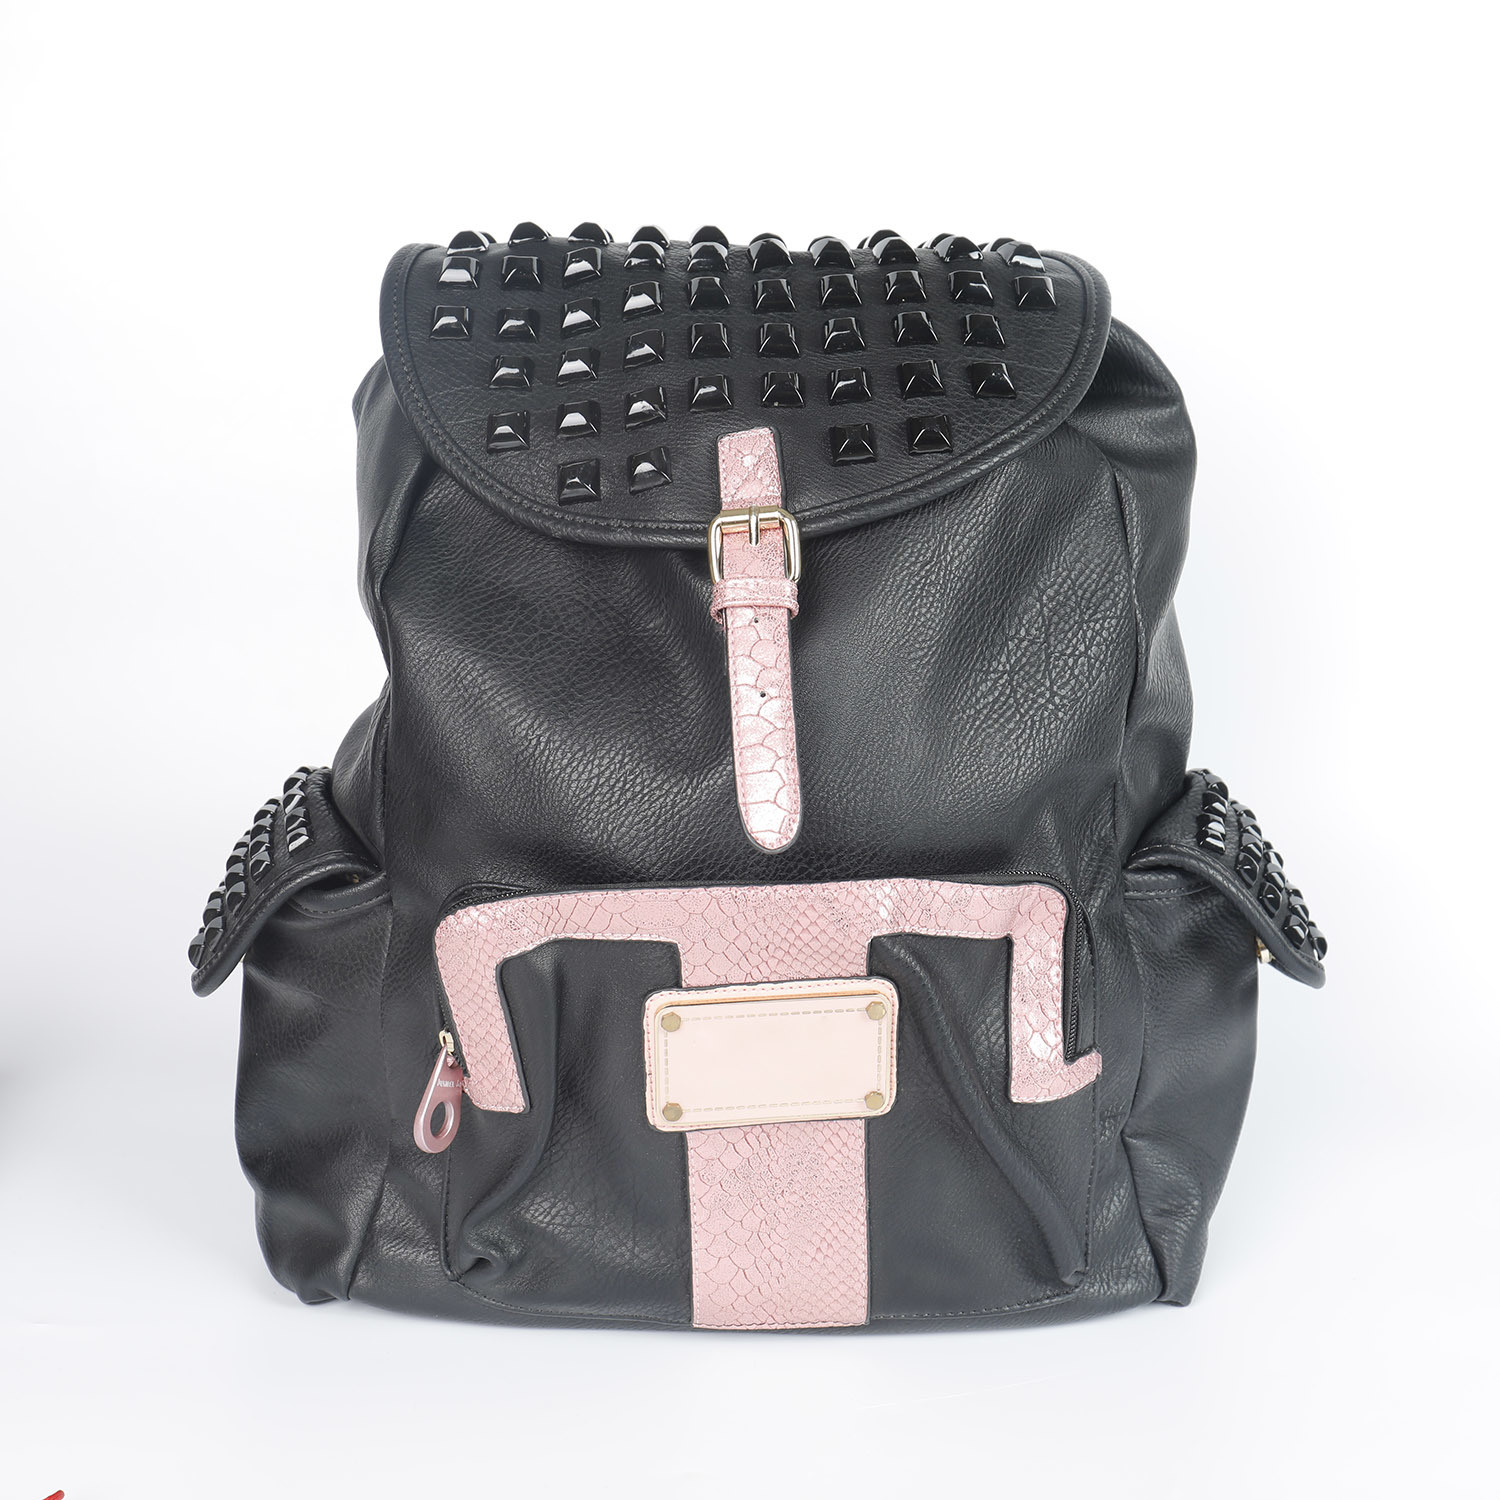 Black S and S Backpack Travel Case